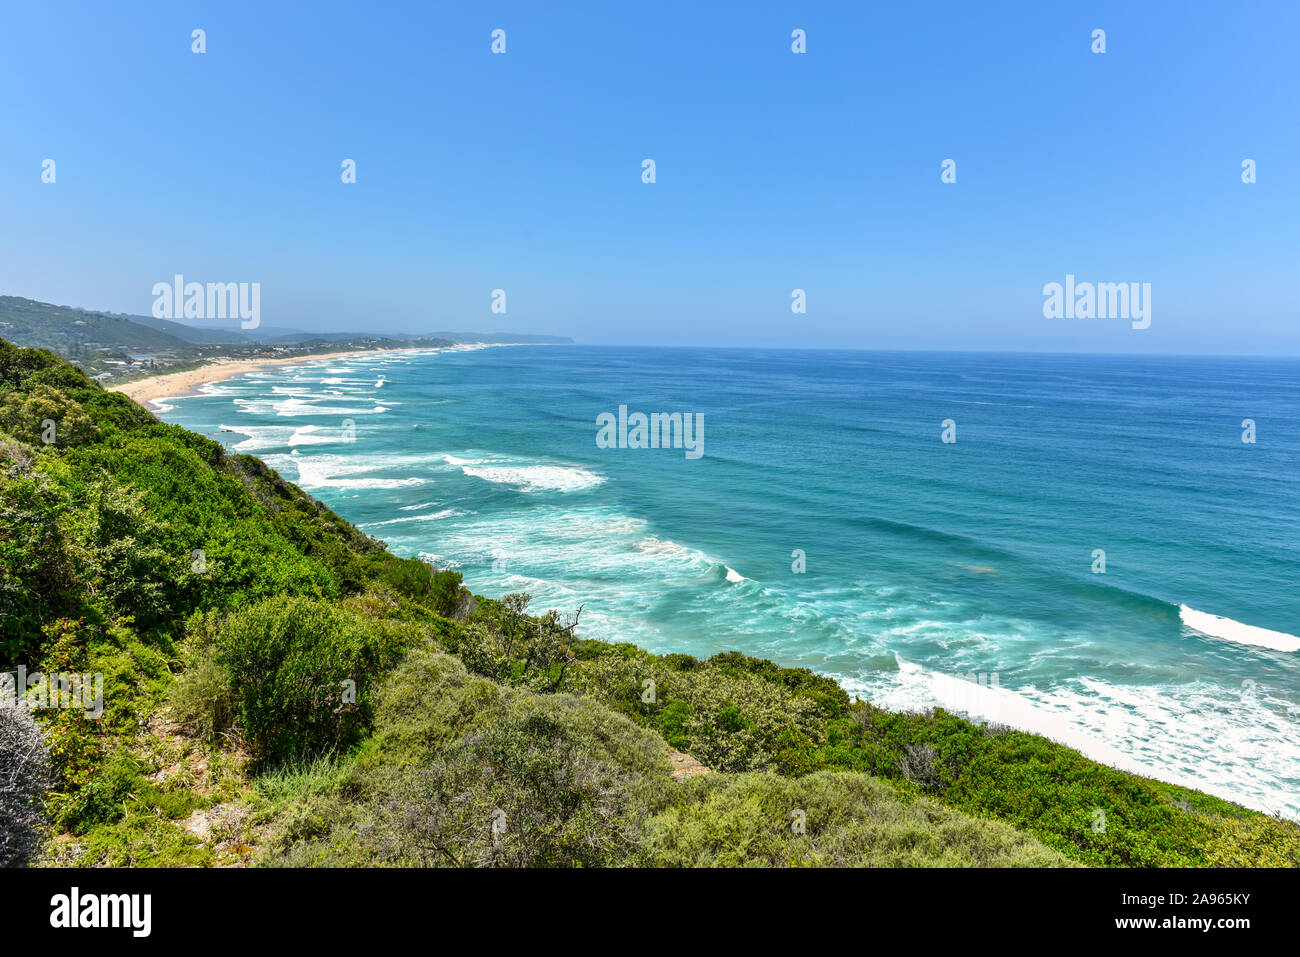 Wilderness from the view point on the Garden Route, Western Cape, South Africa Stock Photo